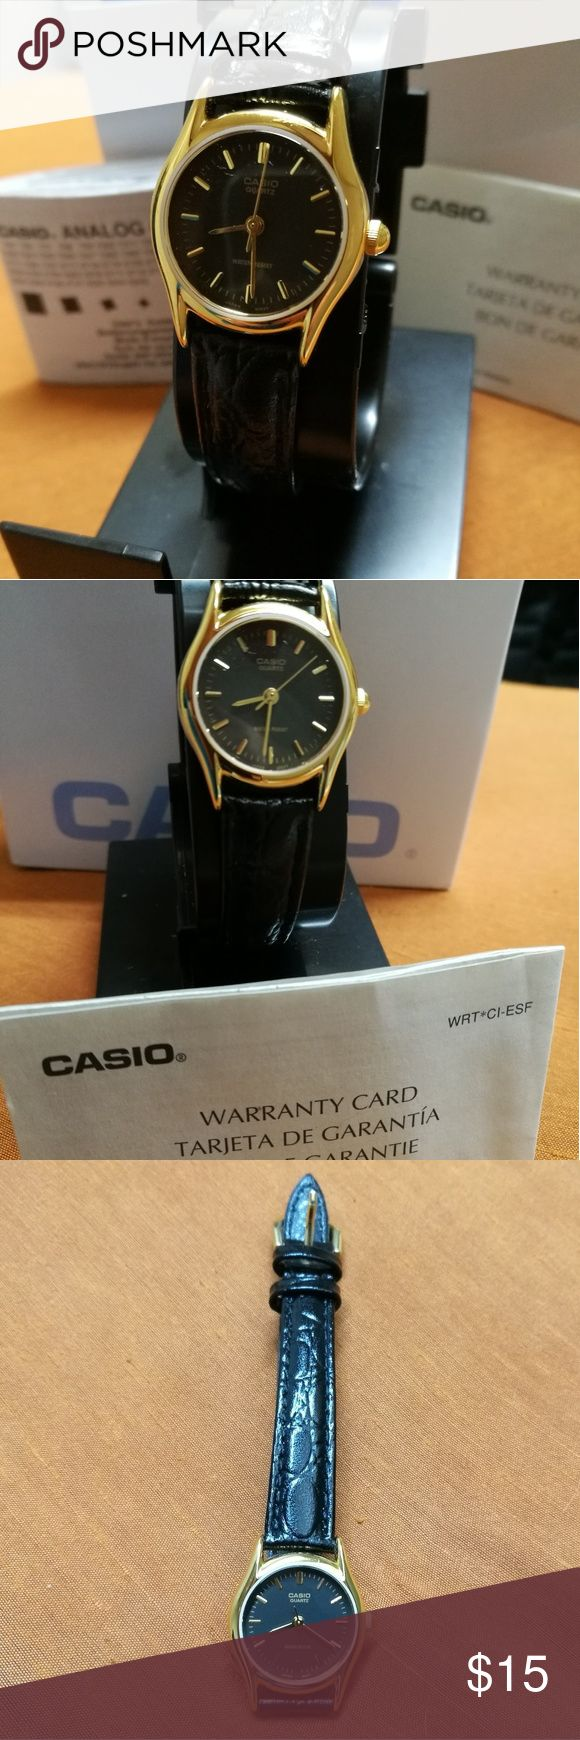 Casio ladies watch, warranty & box I bought this watch, wore it one afternoon, and then fell in love with a Skagen watch here on PM. In the spirit of not having too many things (Pm doesn't make it easy!), I am putting this up for sale. Simple and classic. Casio Accessories Watches